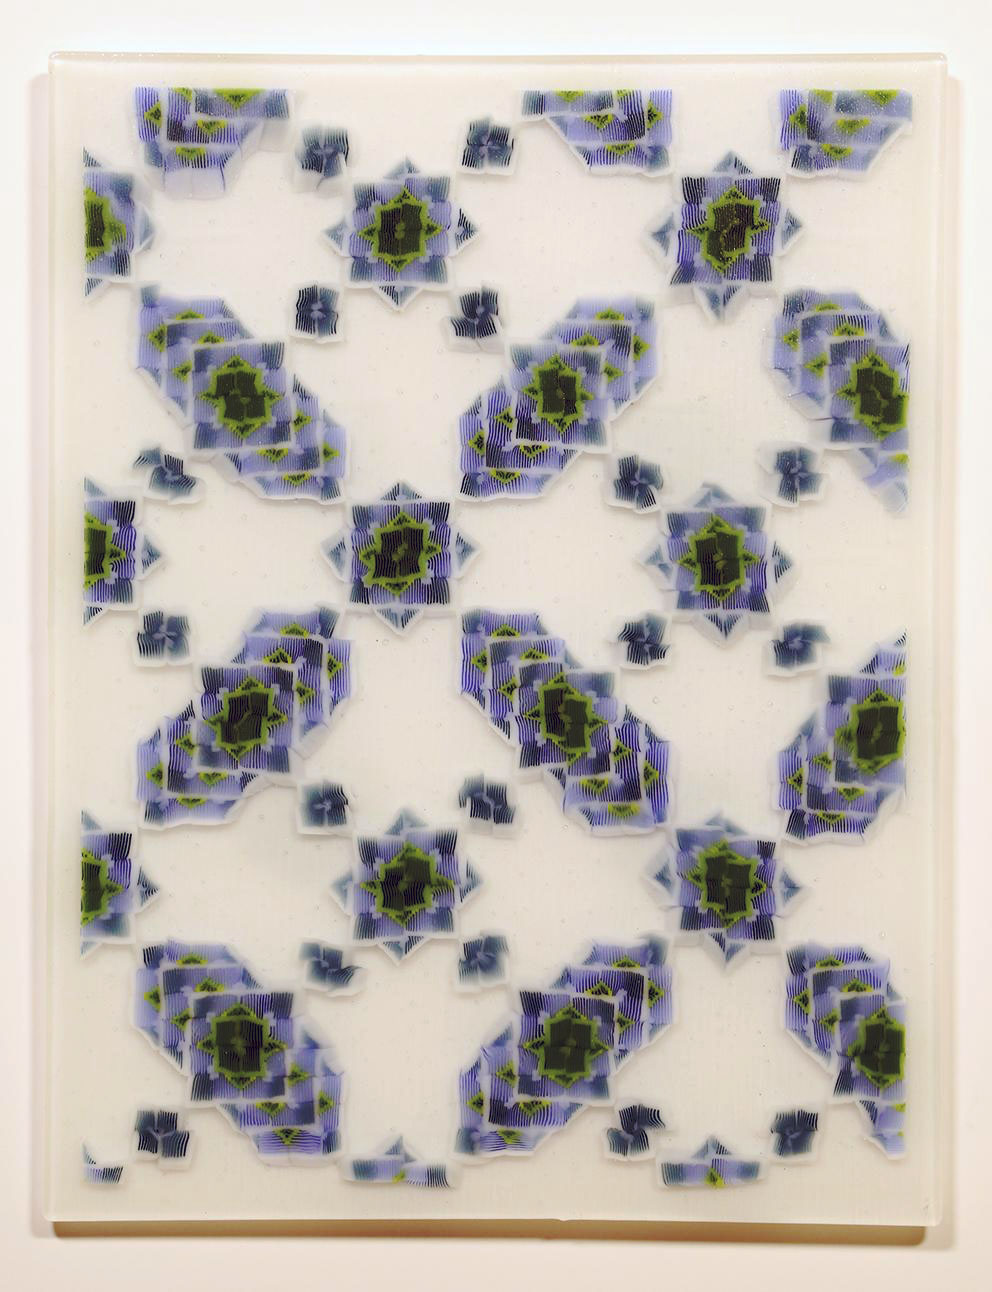 Untitled (Moresque Pattern) No. 2 